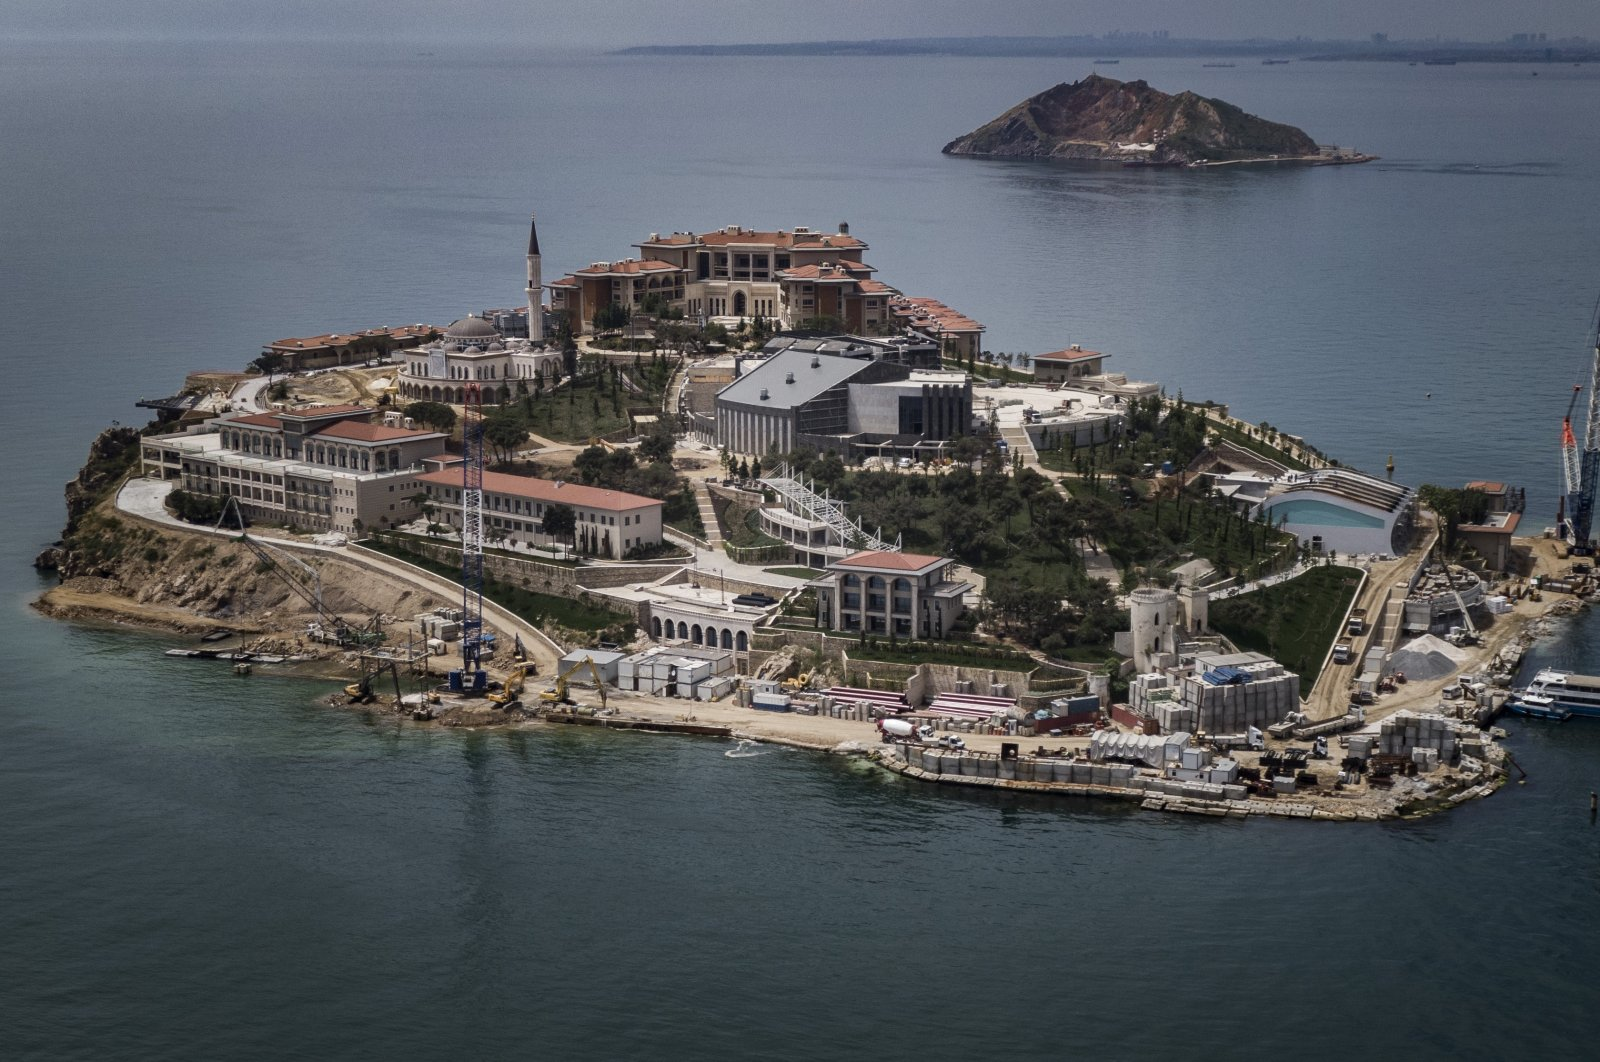 An aerial view of the Democracy and Freedom Island, where Yassıada hearings took place after the 1960 military coup. (DHA Photo)